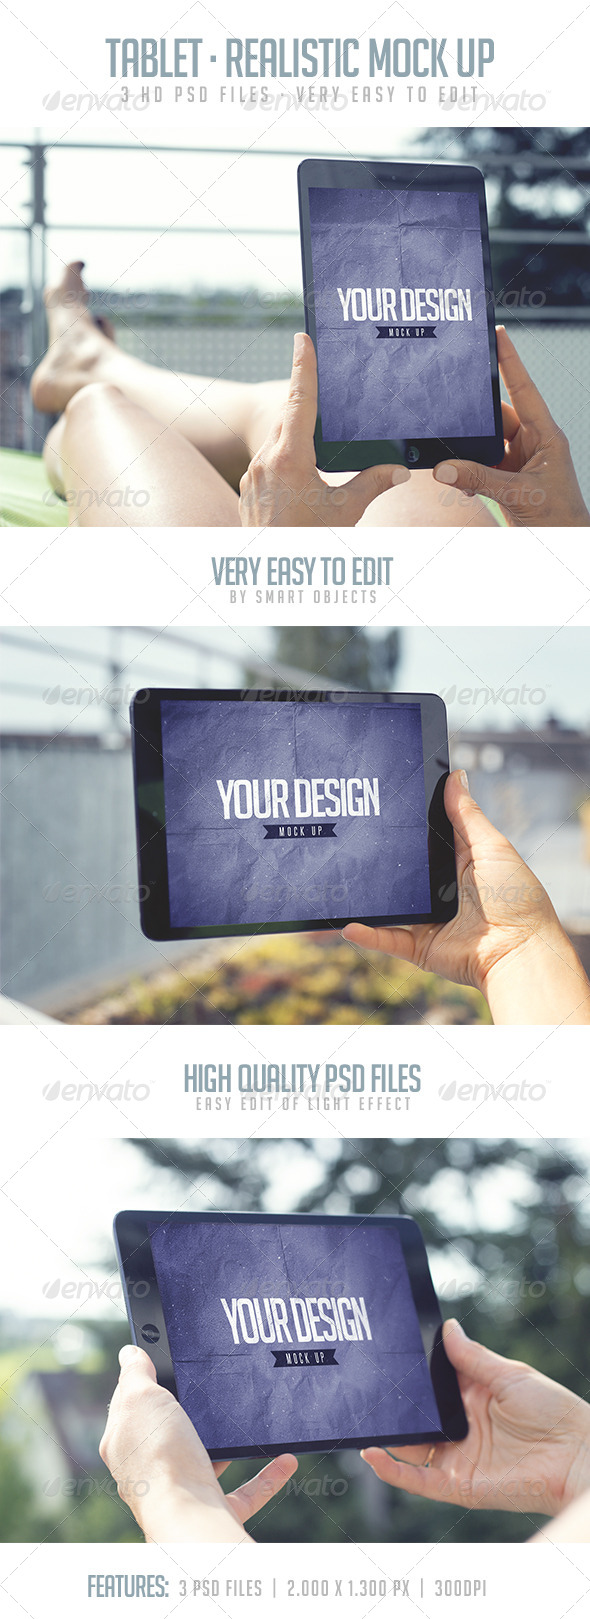 GraphicRiver Tablet Realistic Mock Up 8076909